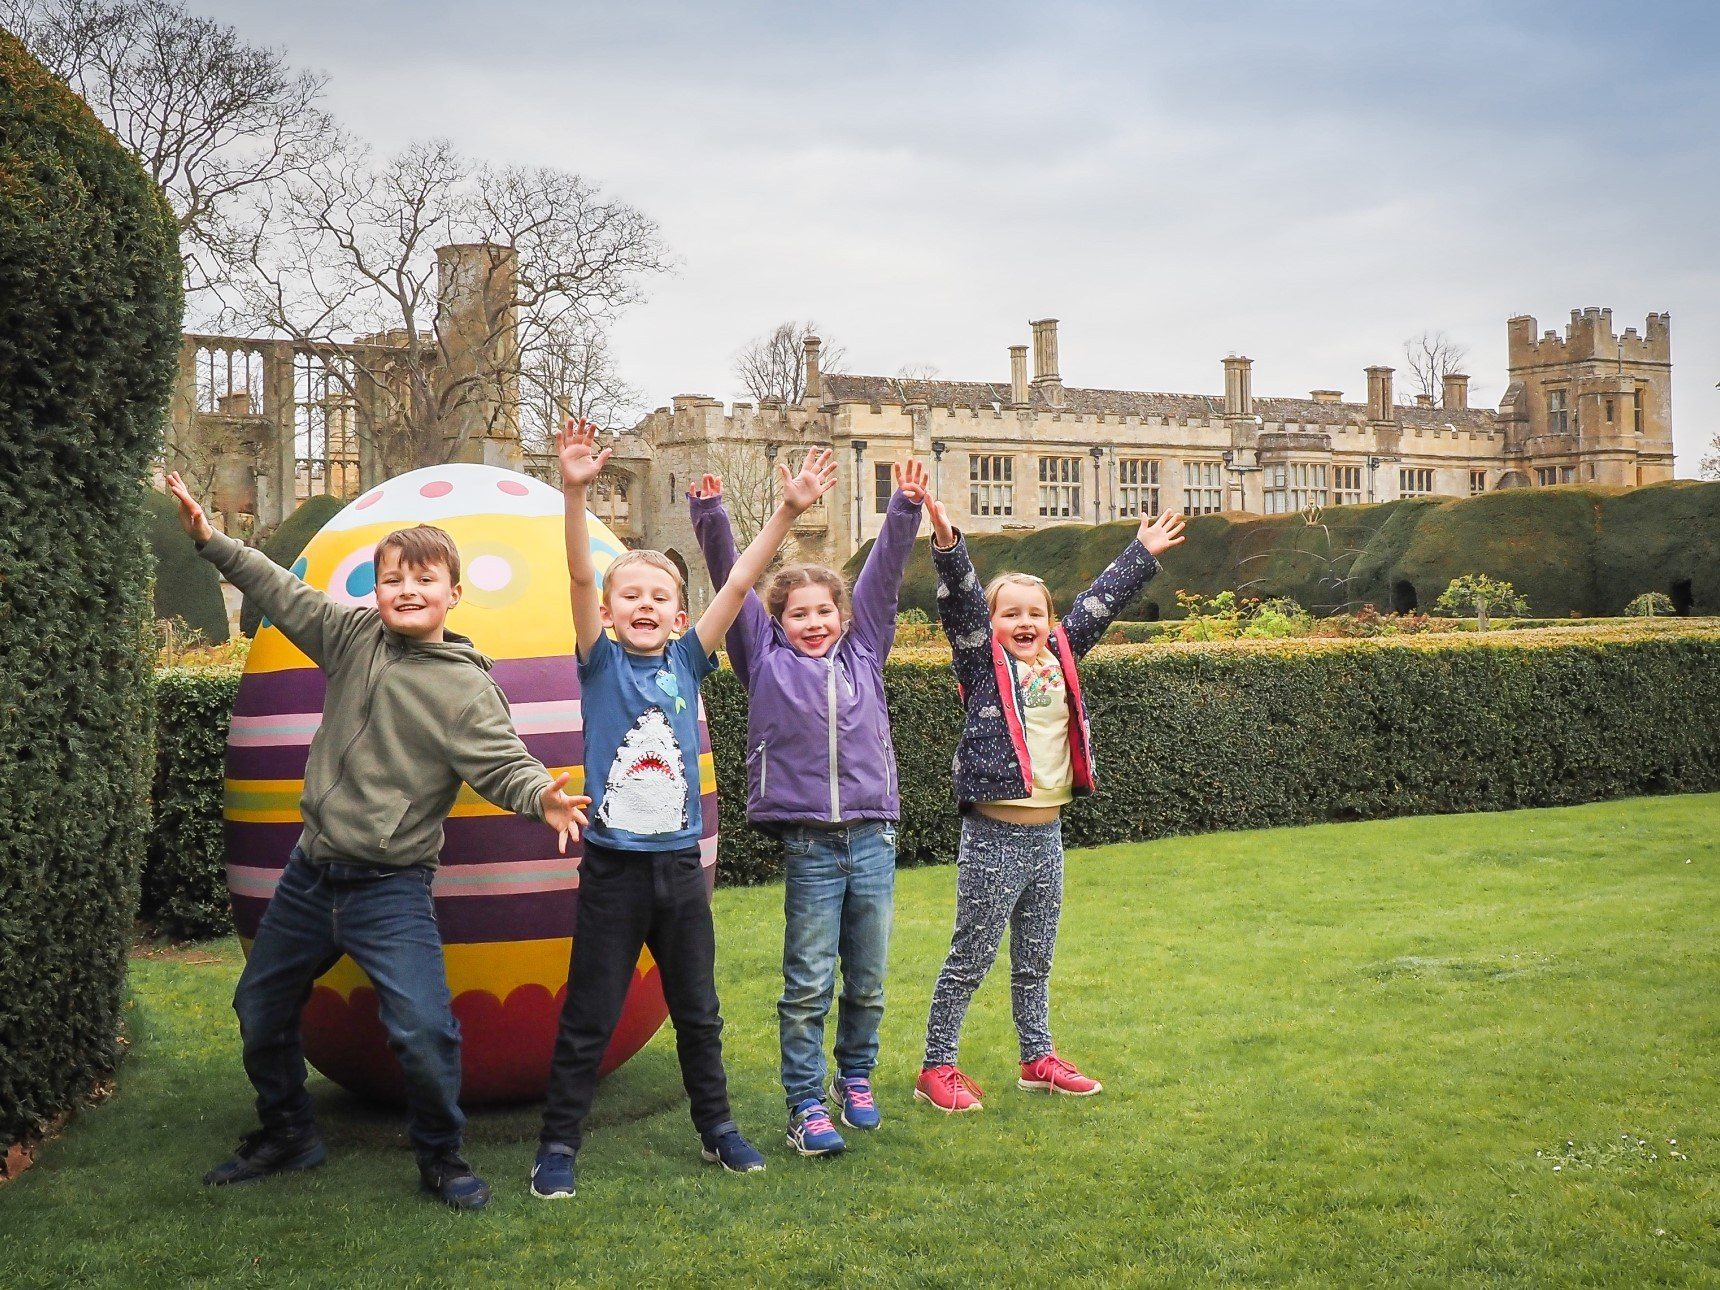 Children in front of giant easter egg with sudeley castle in background